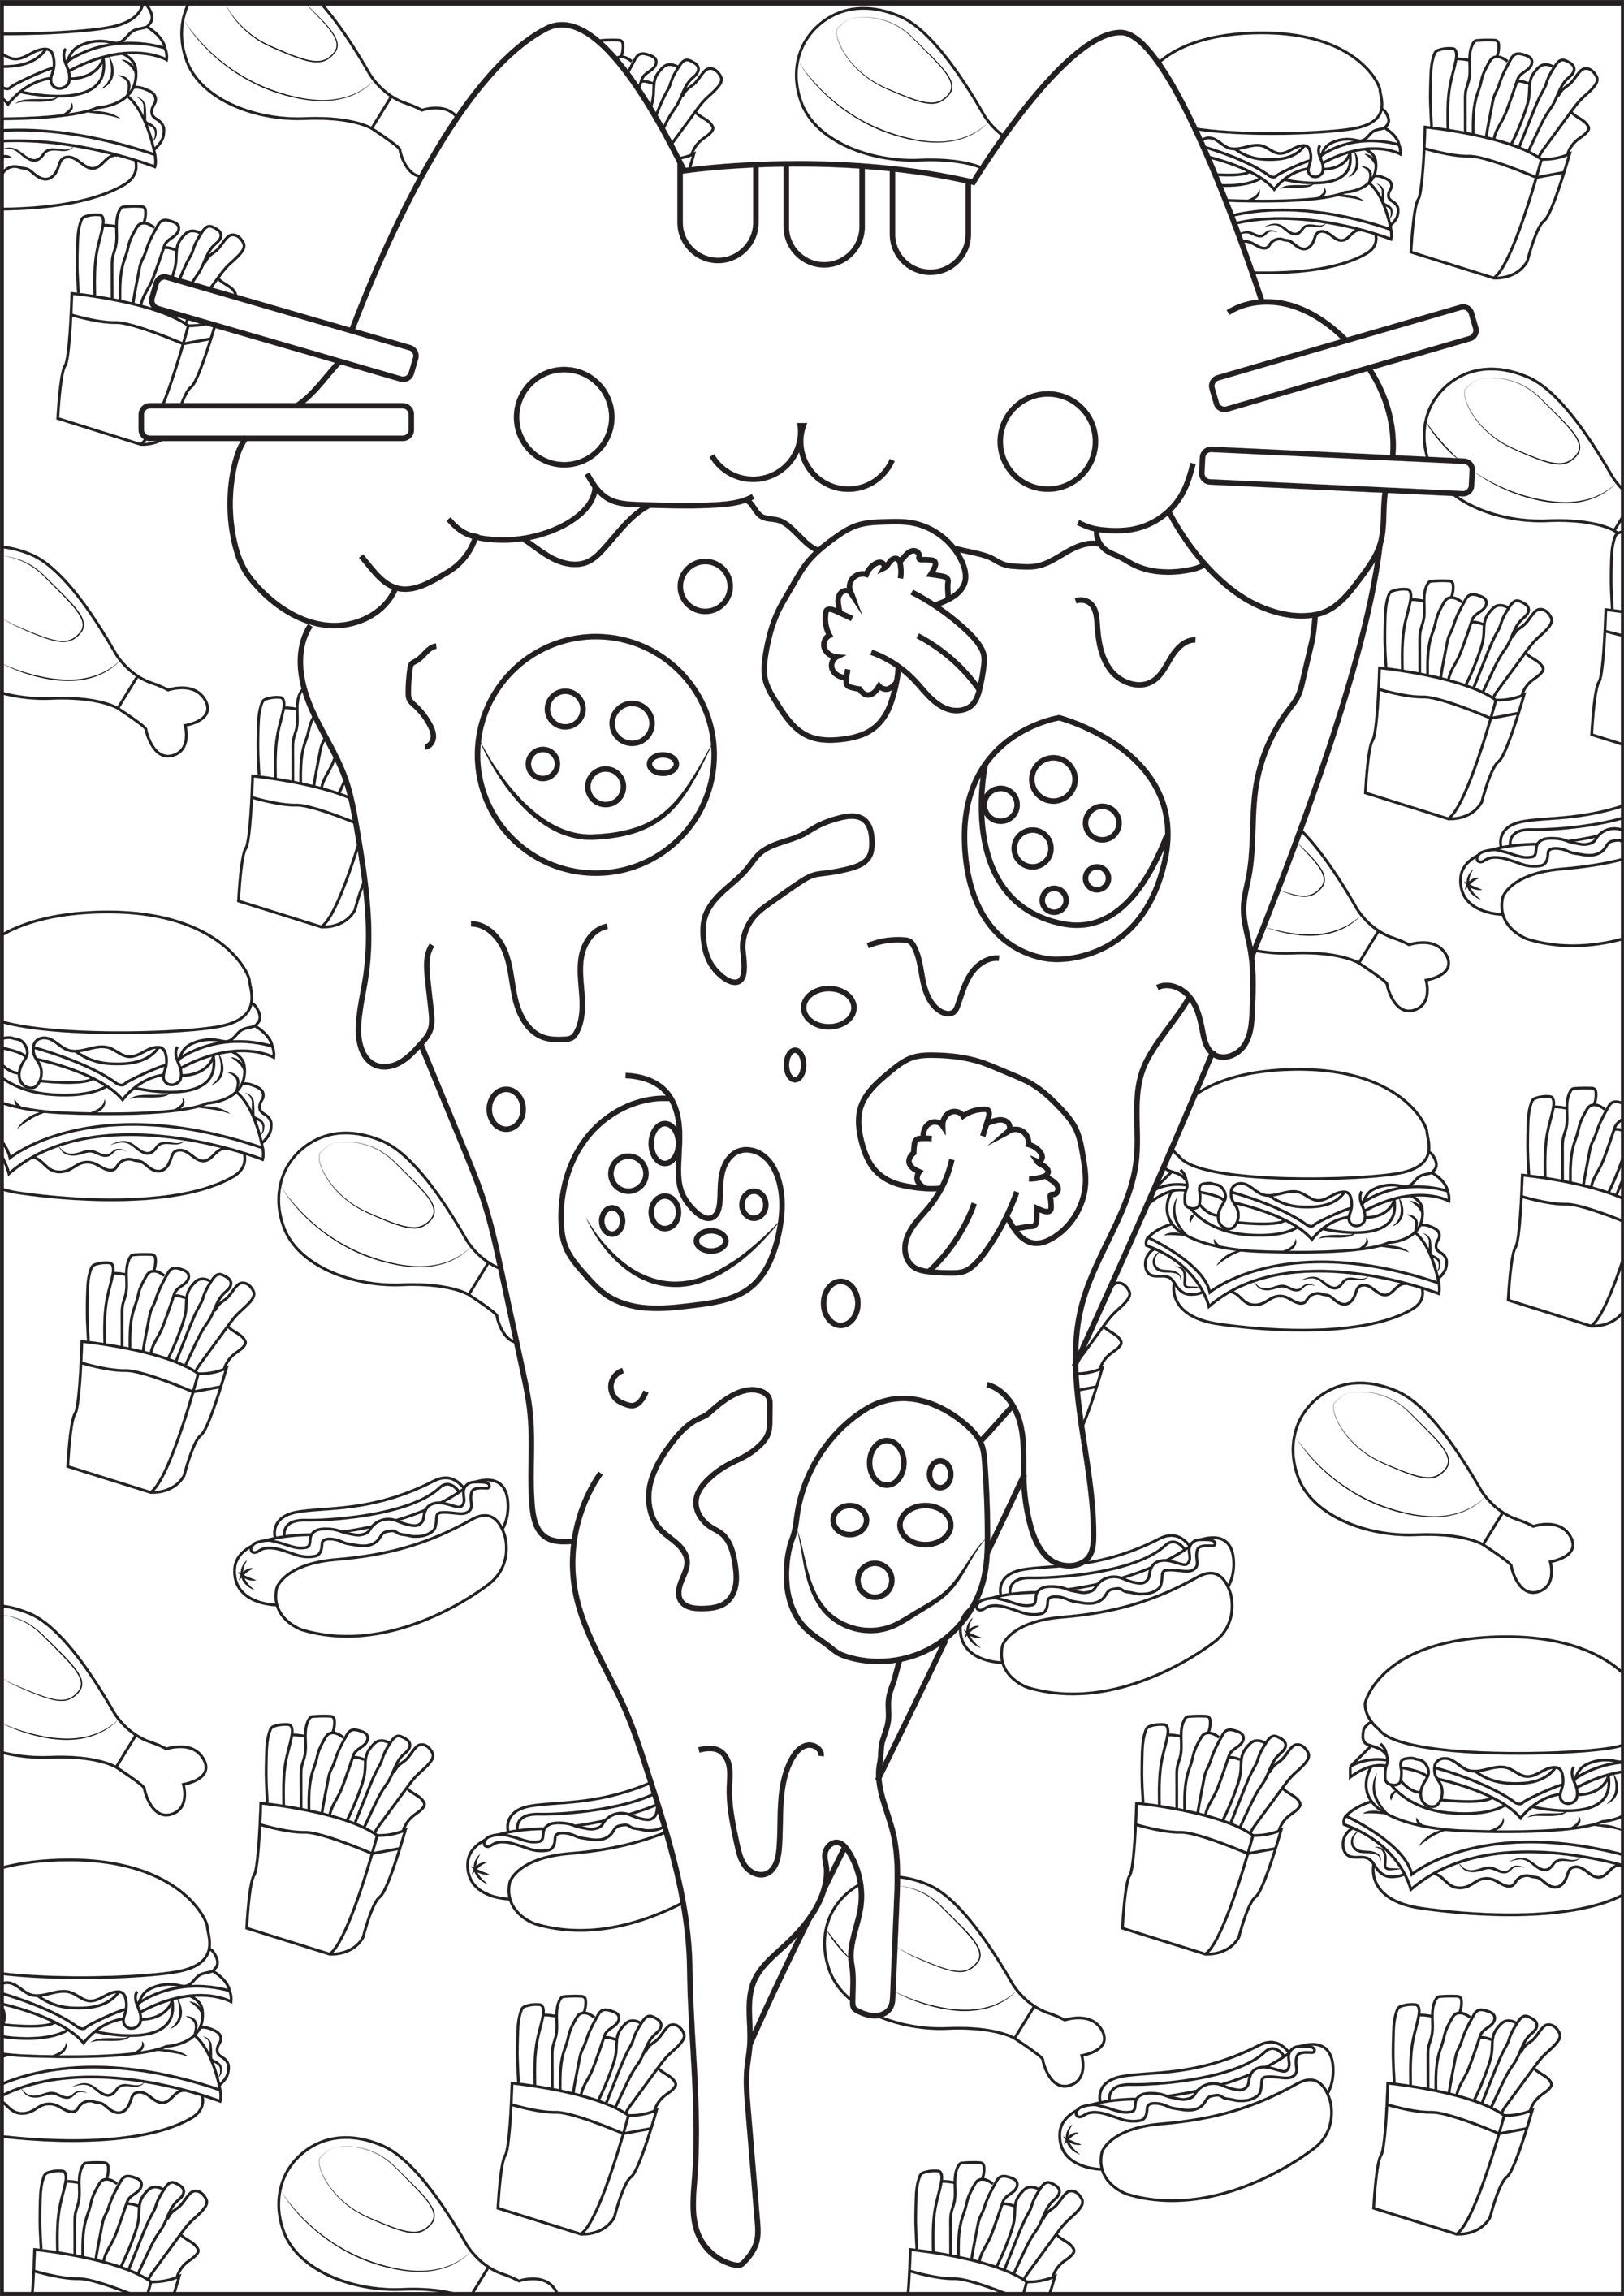 Pizza Pusheen Doodle Art Doodling Coloring Pages For Adults